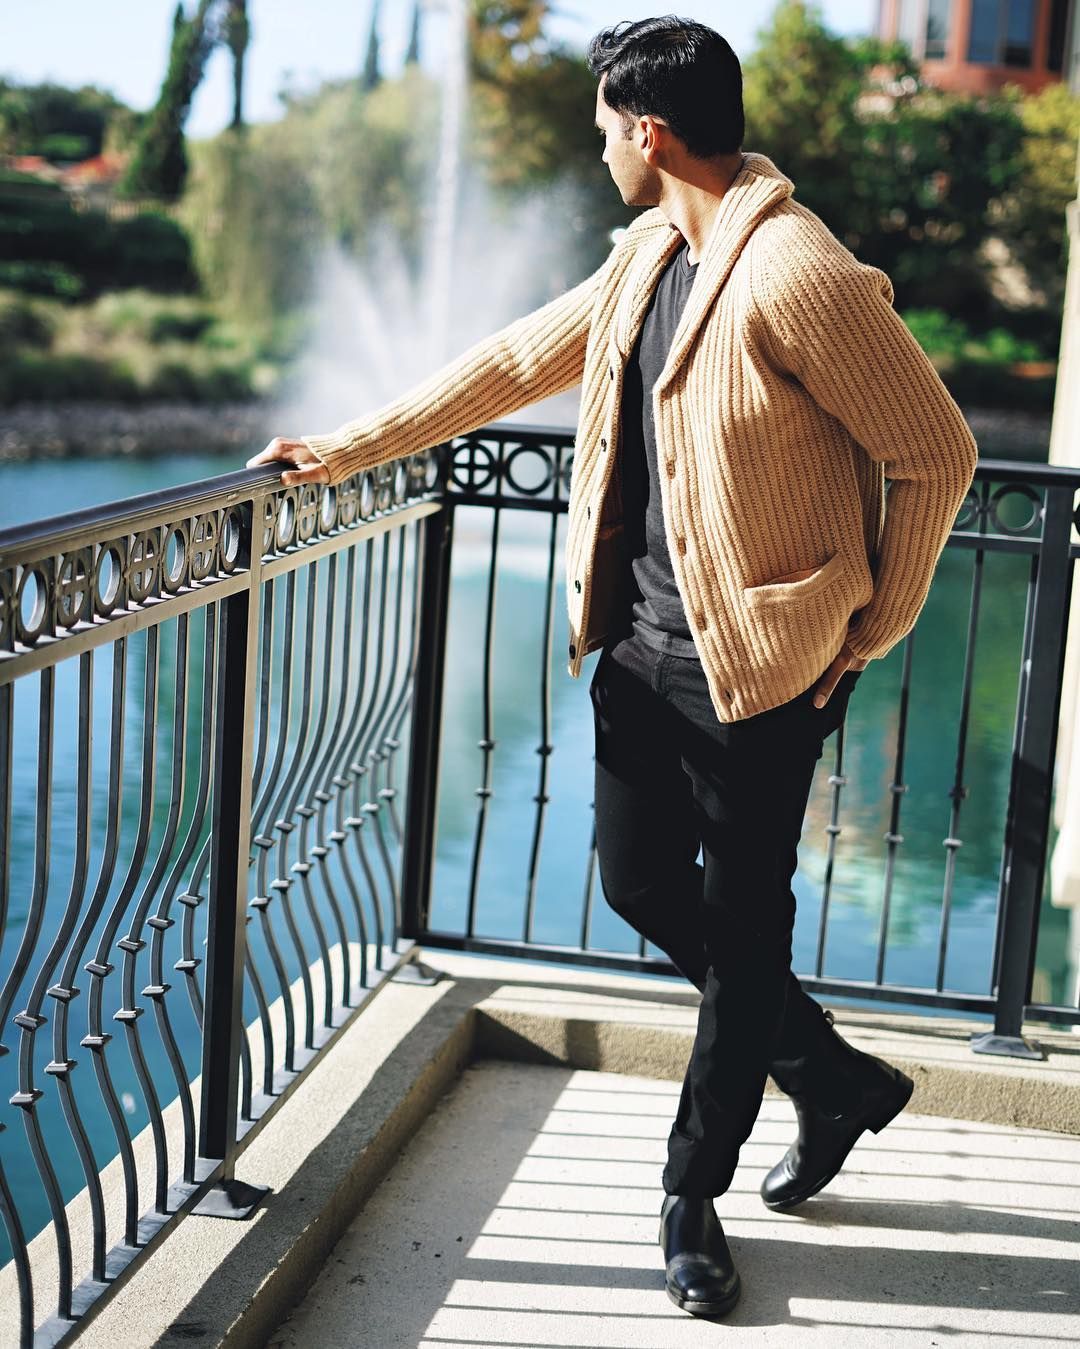 In what weather can you start wearing a coat At what temperature Woolen. Lining is a thin layer of sintepon